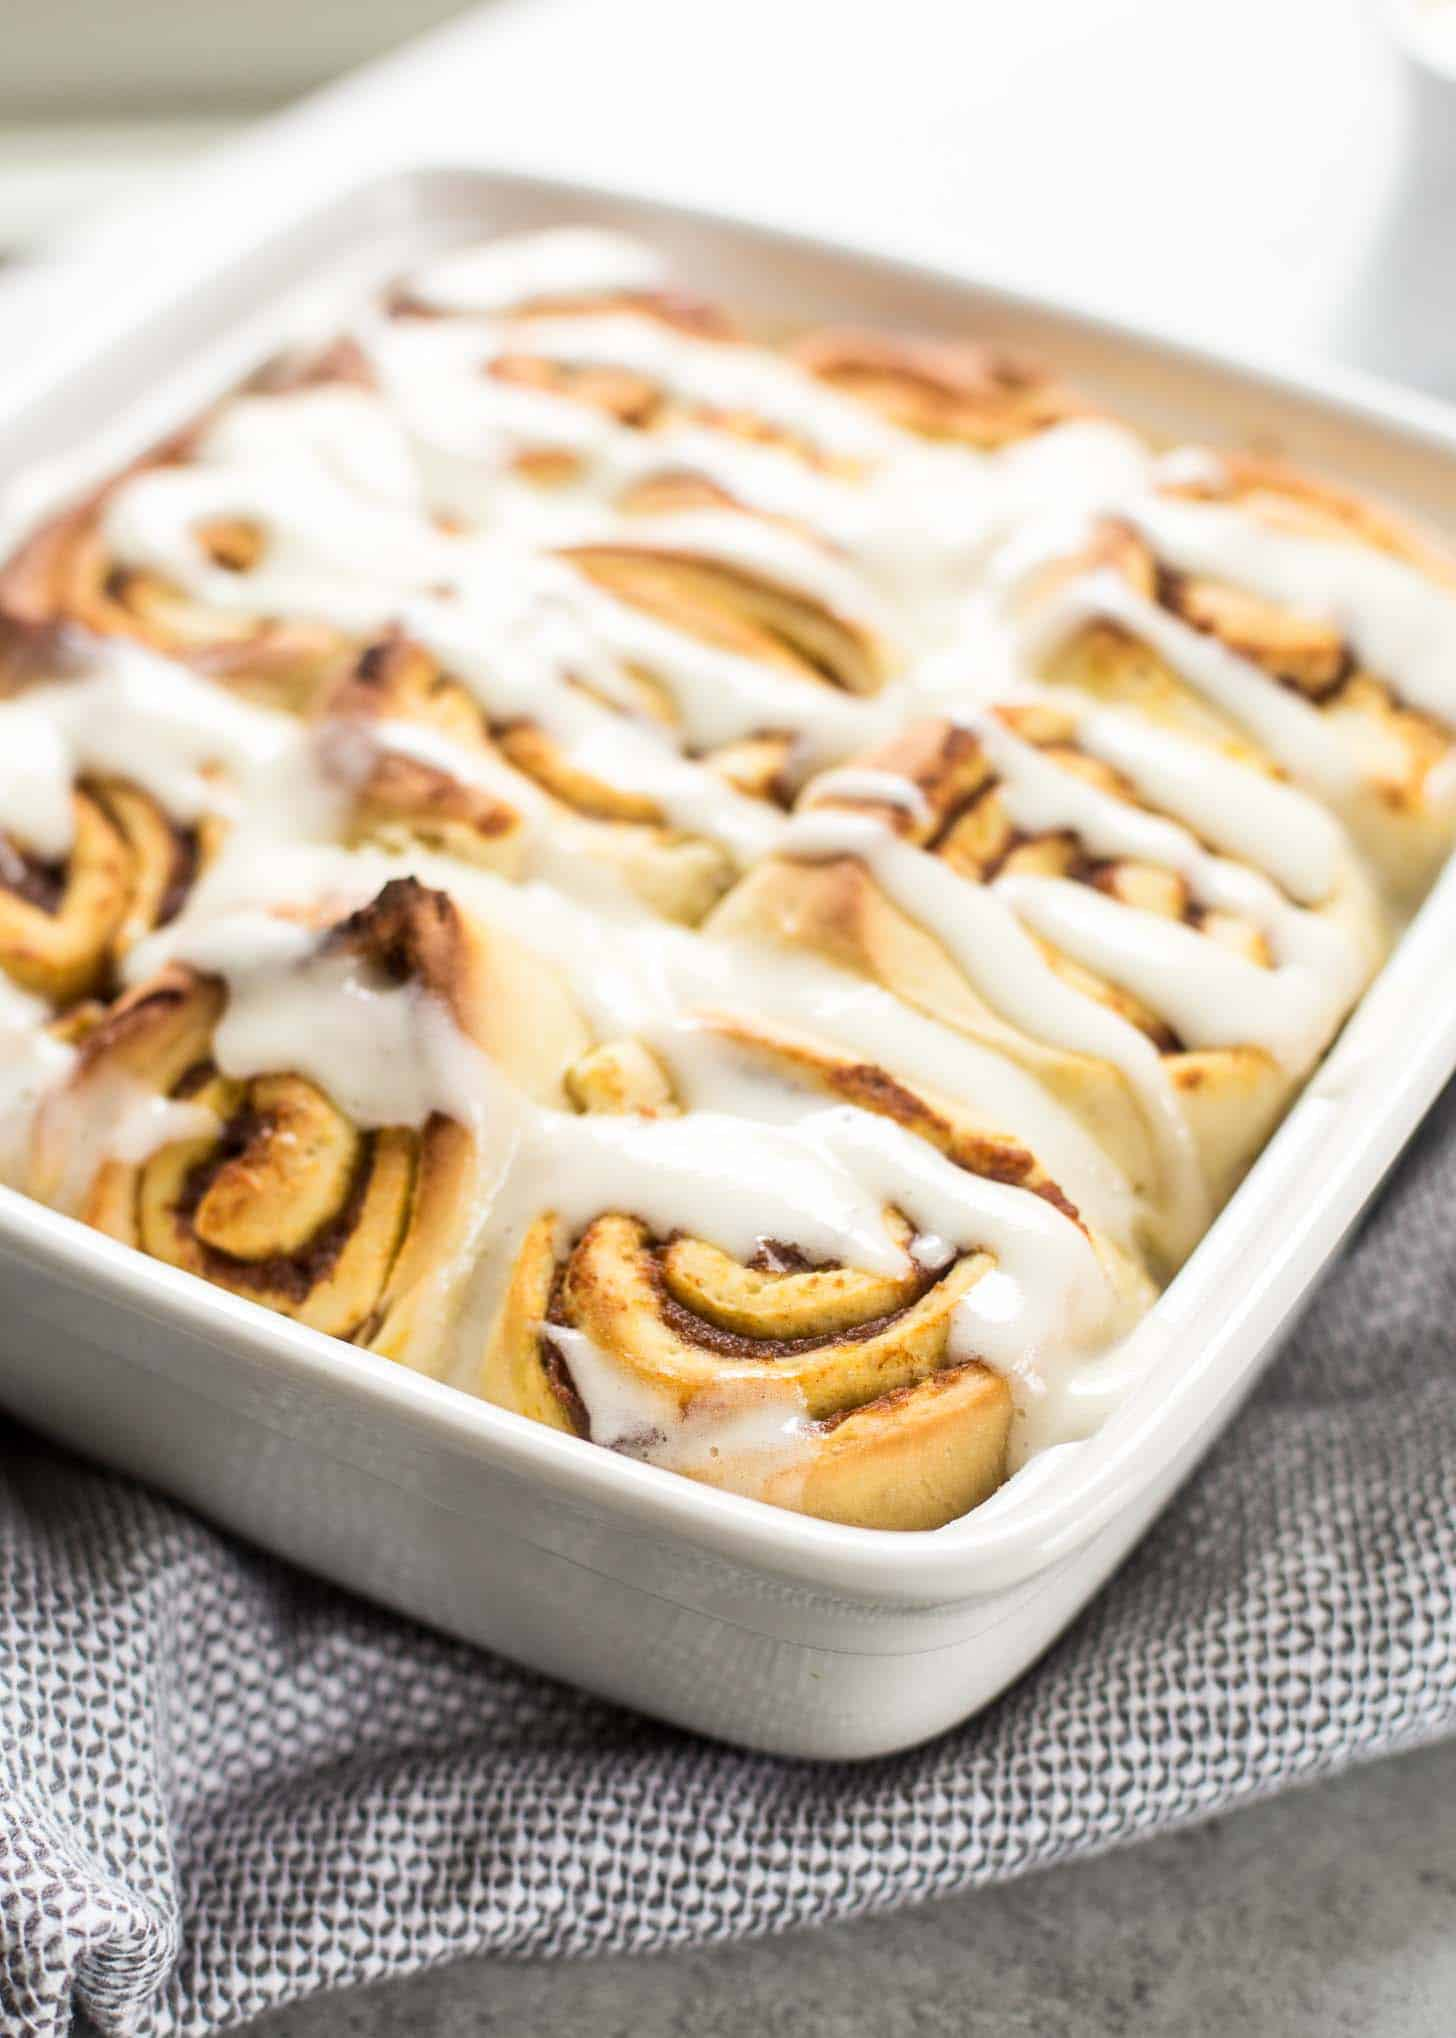 cooked cinnamon rolls in a white baking dish